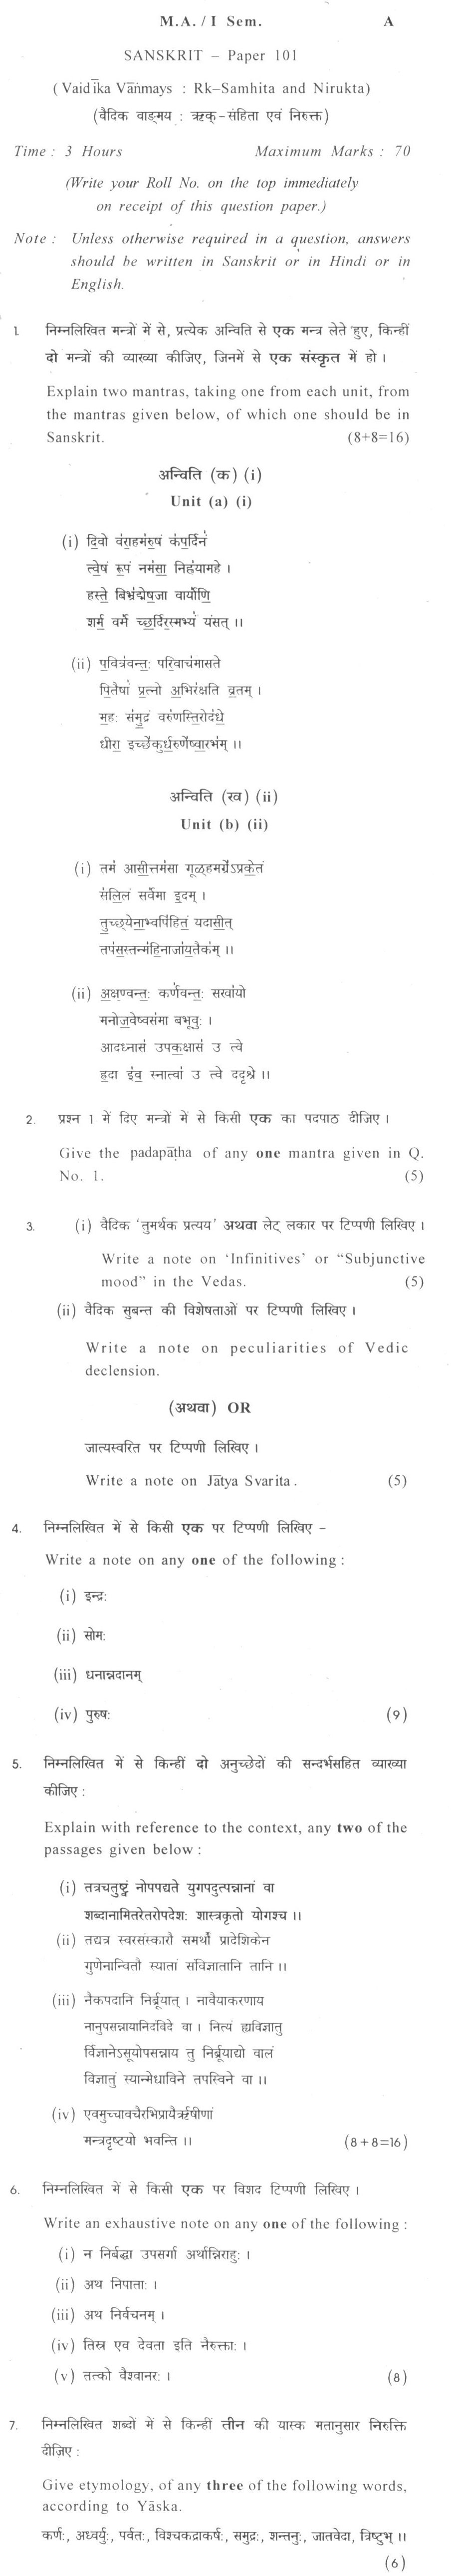 DU SOL M.A. Sanskrit Question Paper - I Semester Vaidika Vanmays Rk-Samhita And Nirukta - Paper 101